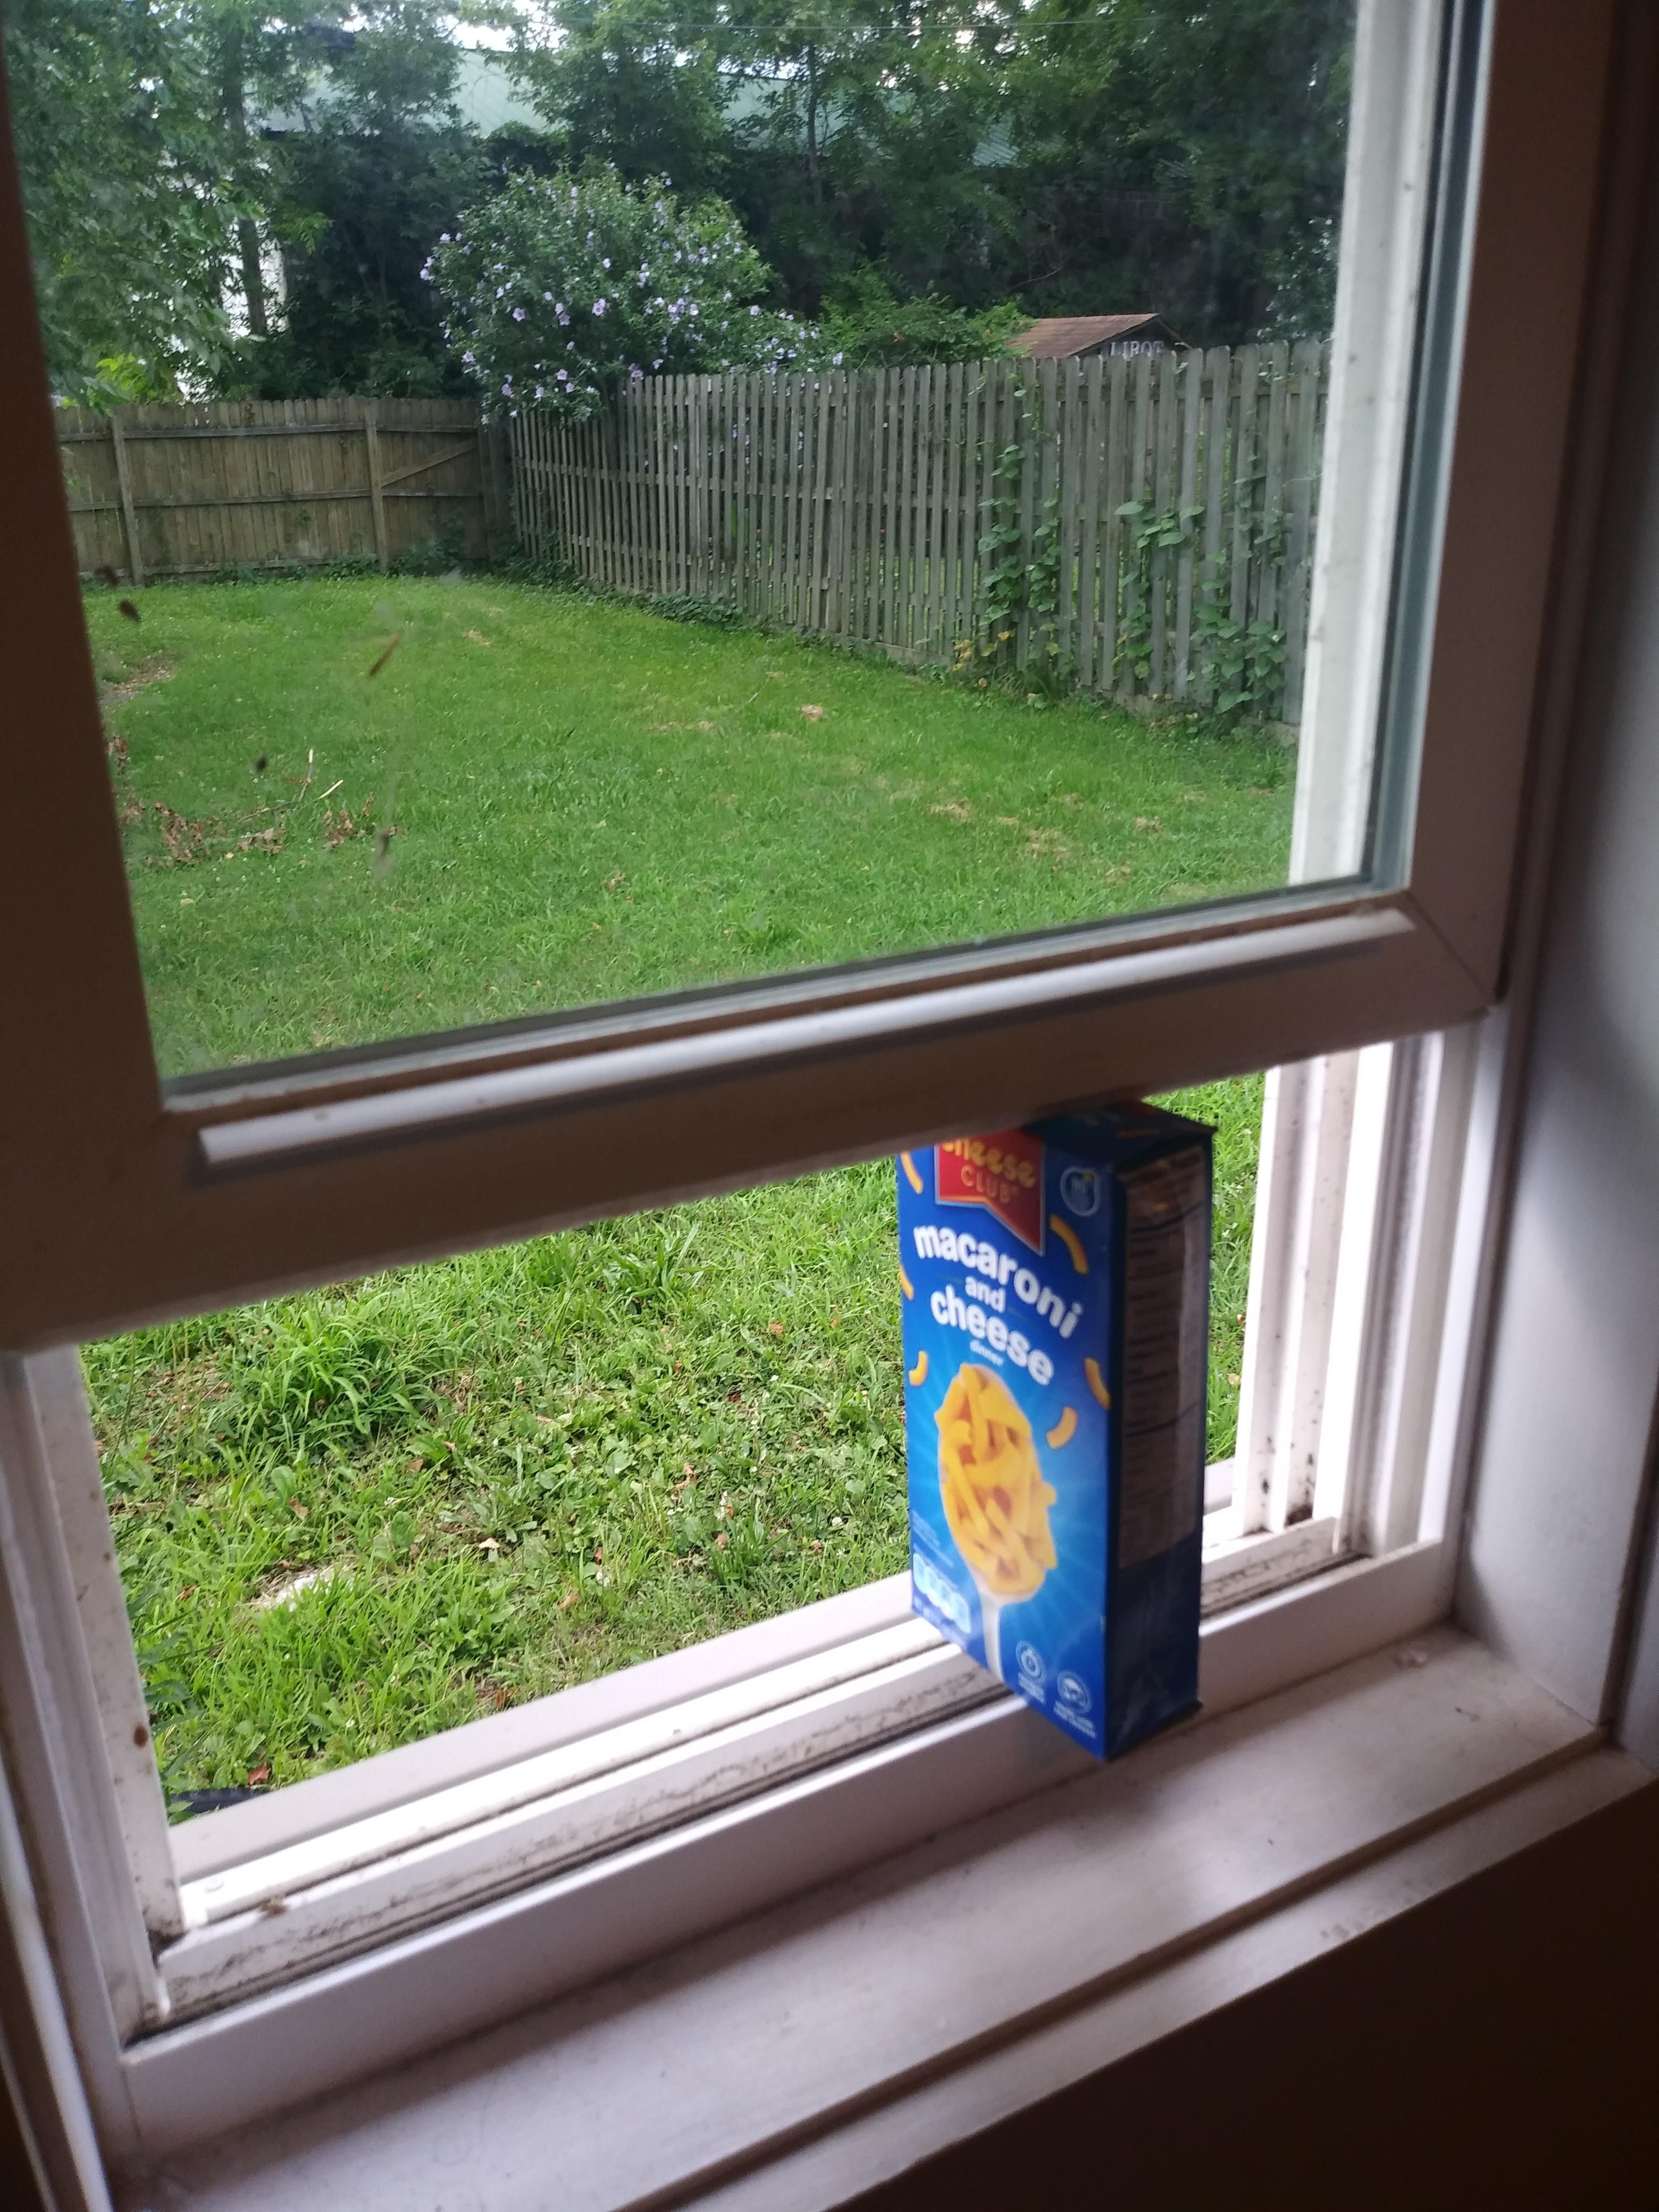 Mac now supports Windows